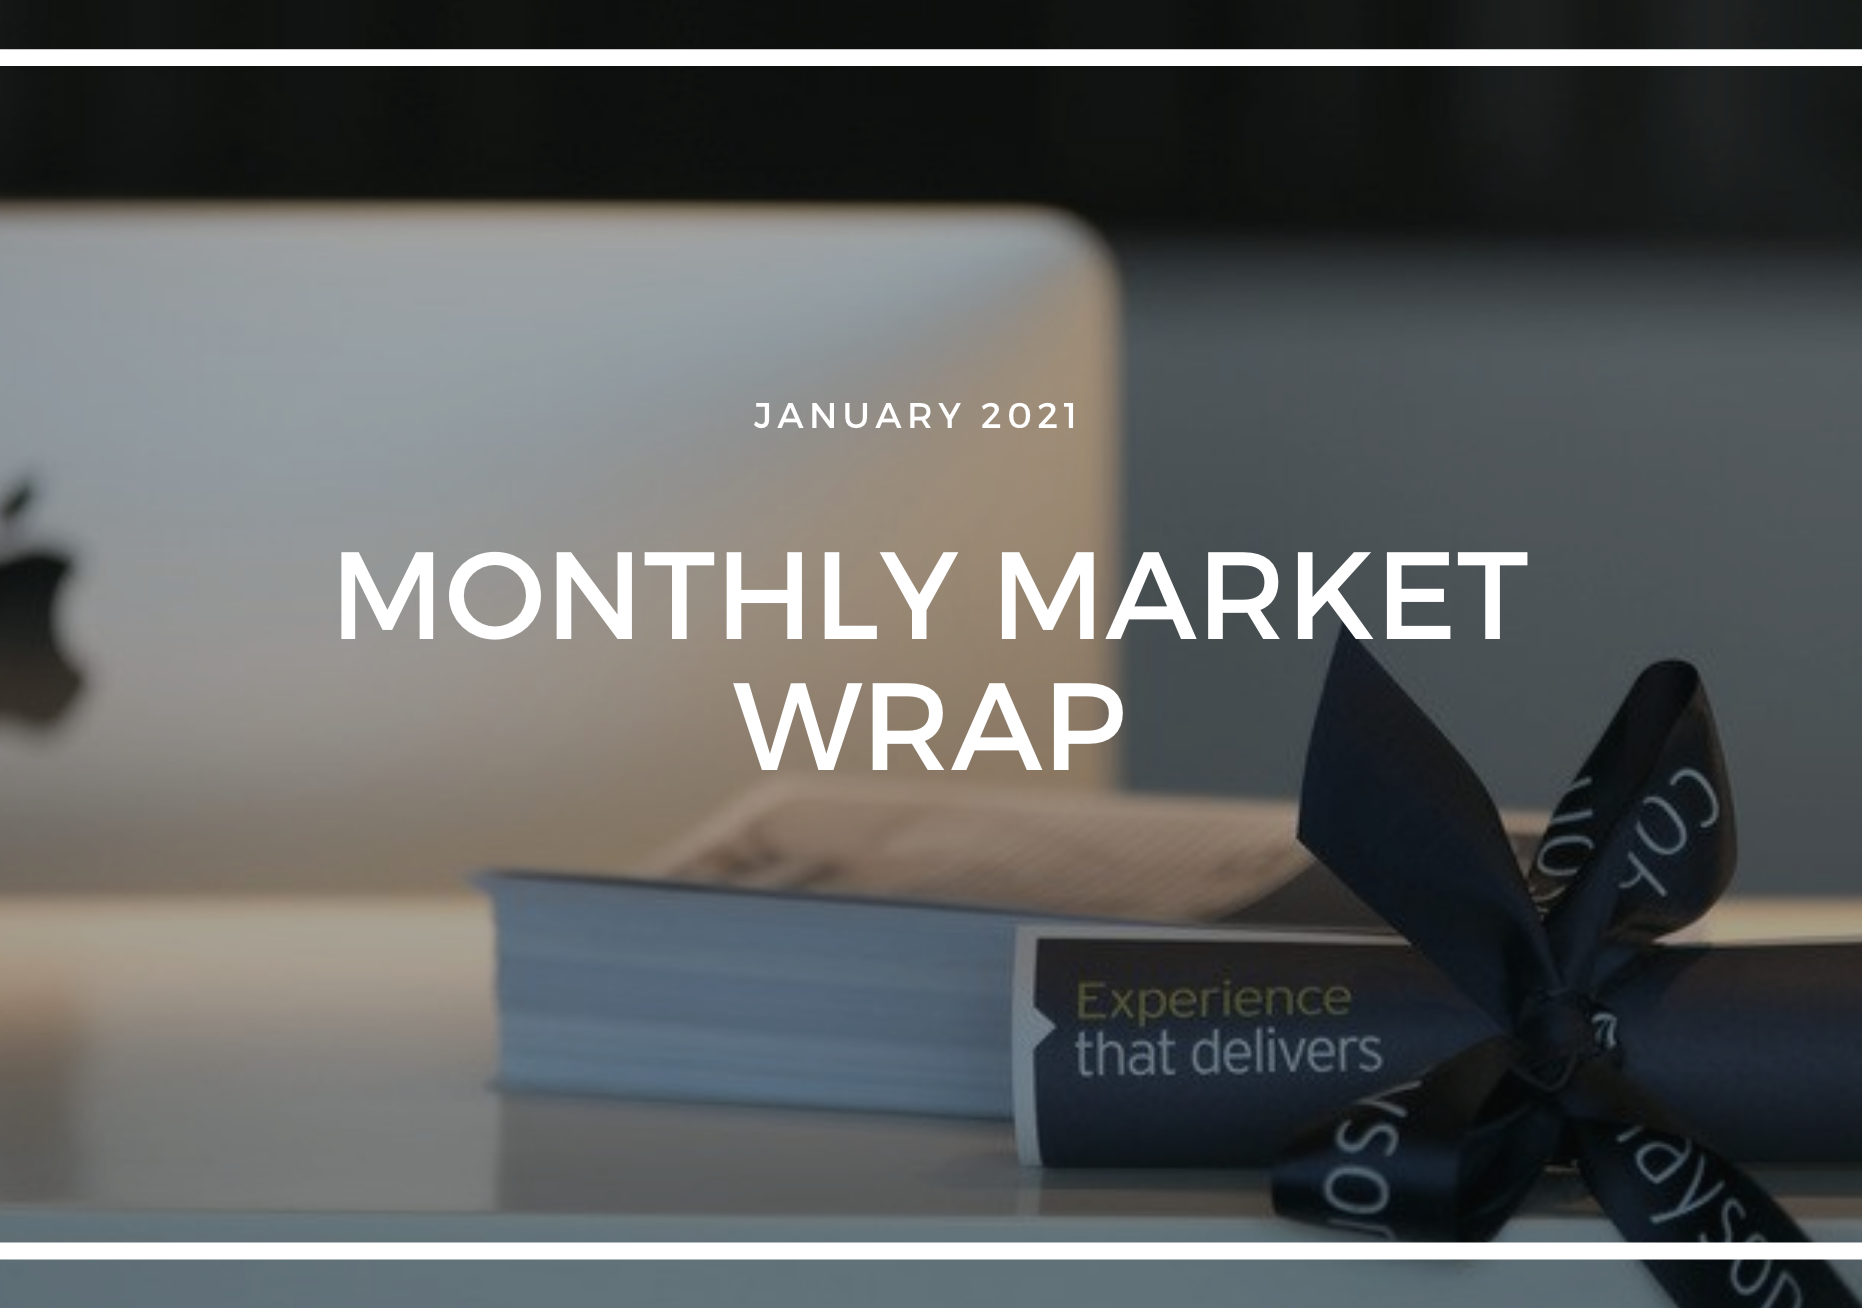 MONTHLY MARKET WRAP: JANUARY 2021